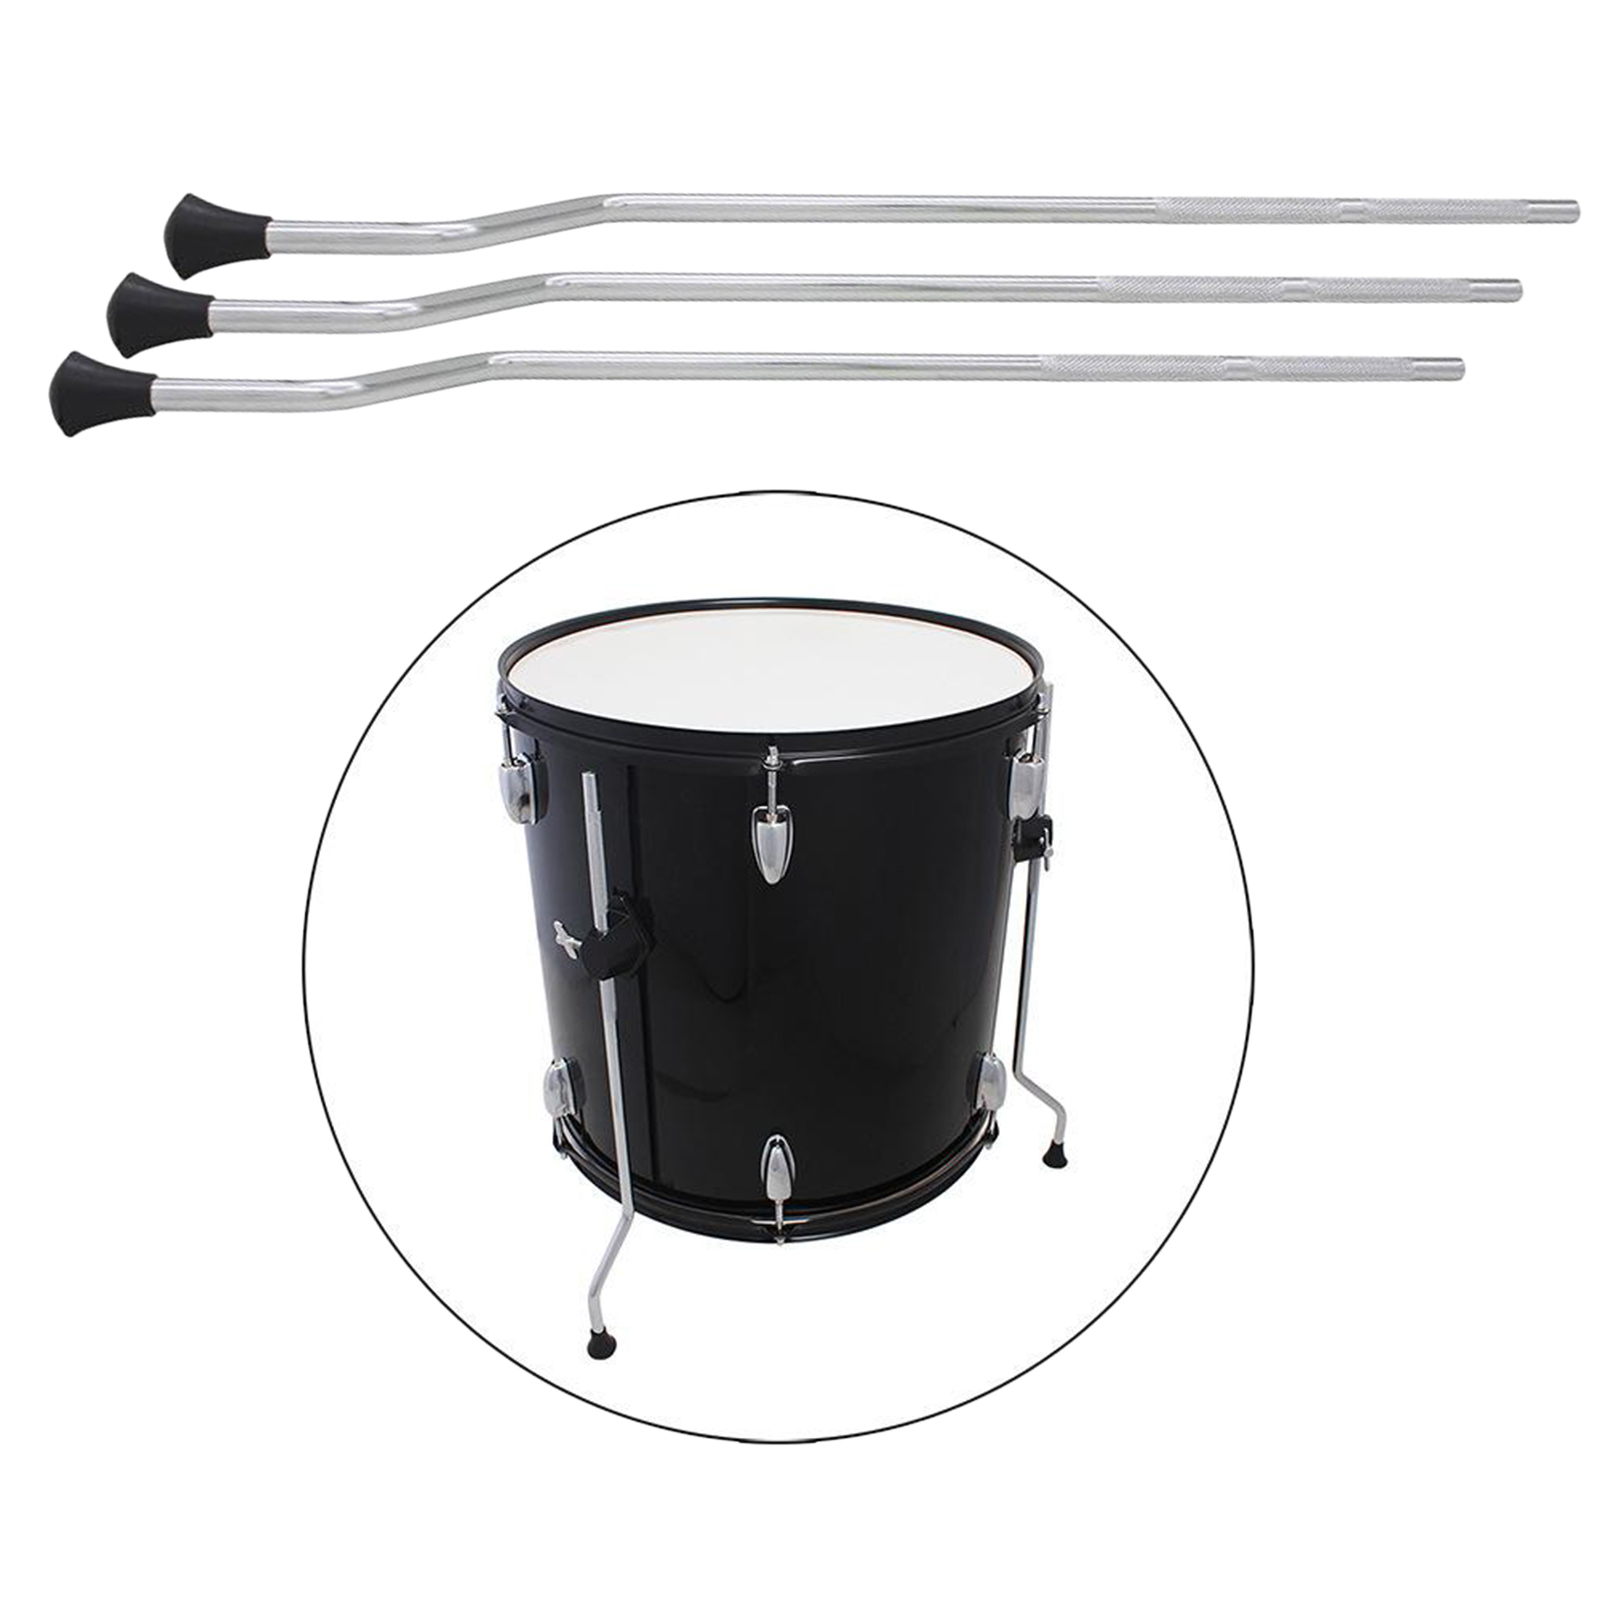 Heavy Duty Floor Tom Drum Legs Non-slip Surface Plating Anti-Rust Percussion Replacement Parts Accessories DIY enlarge